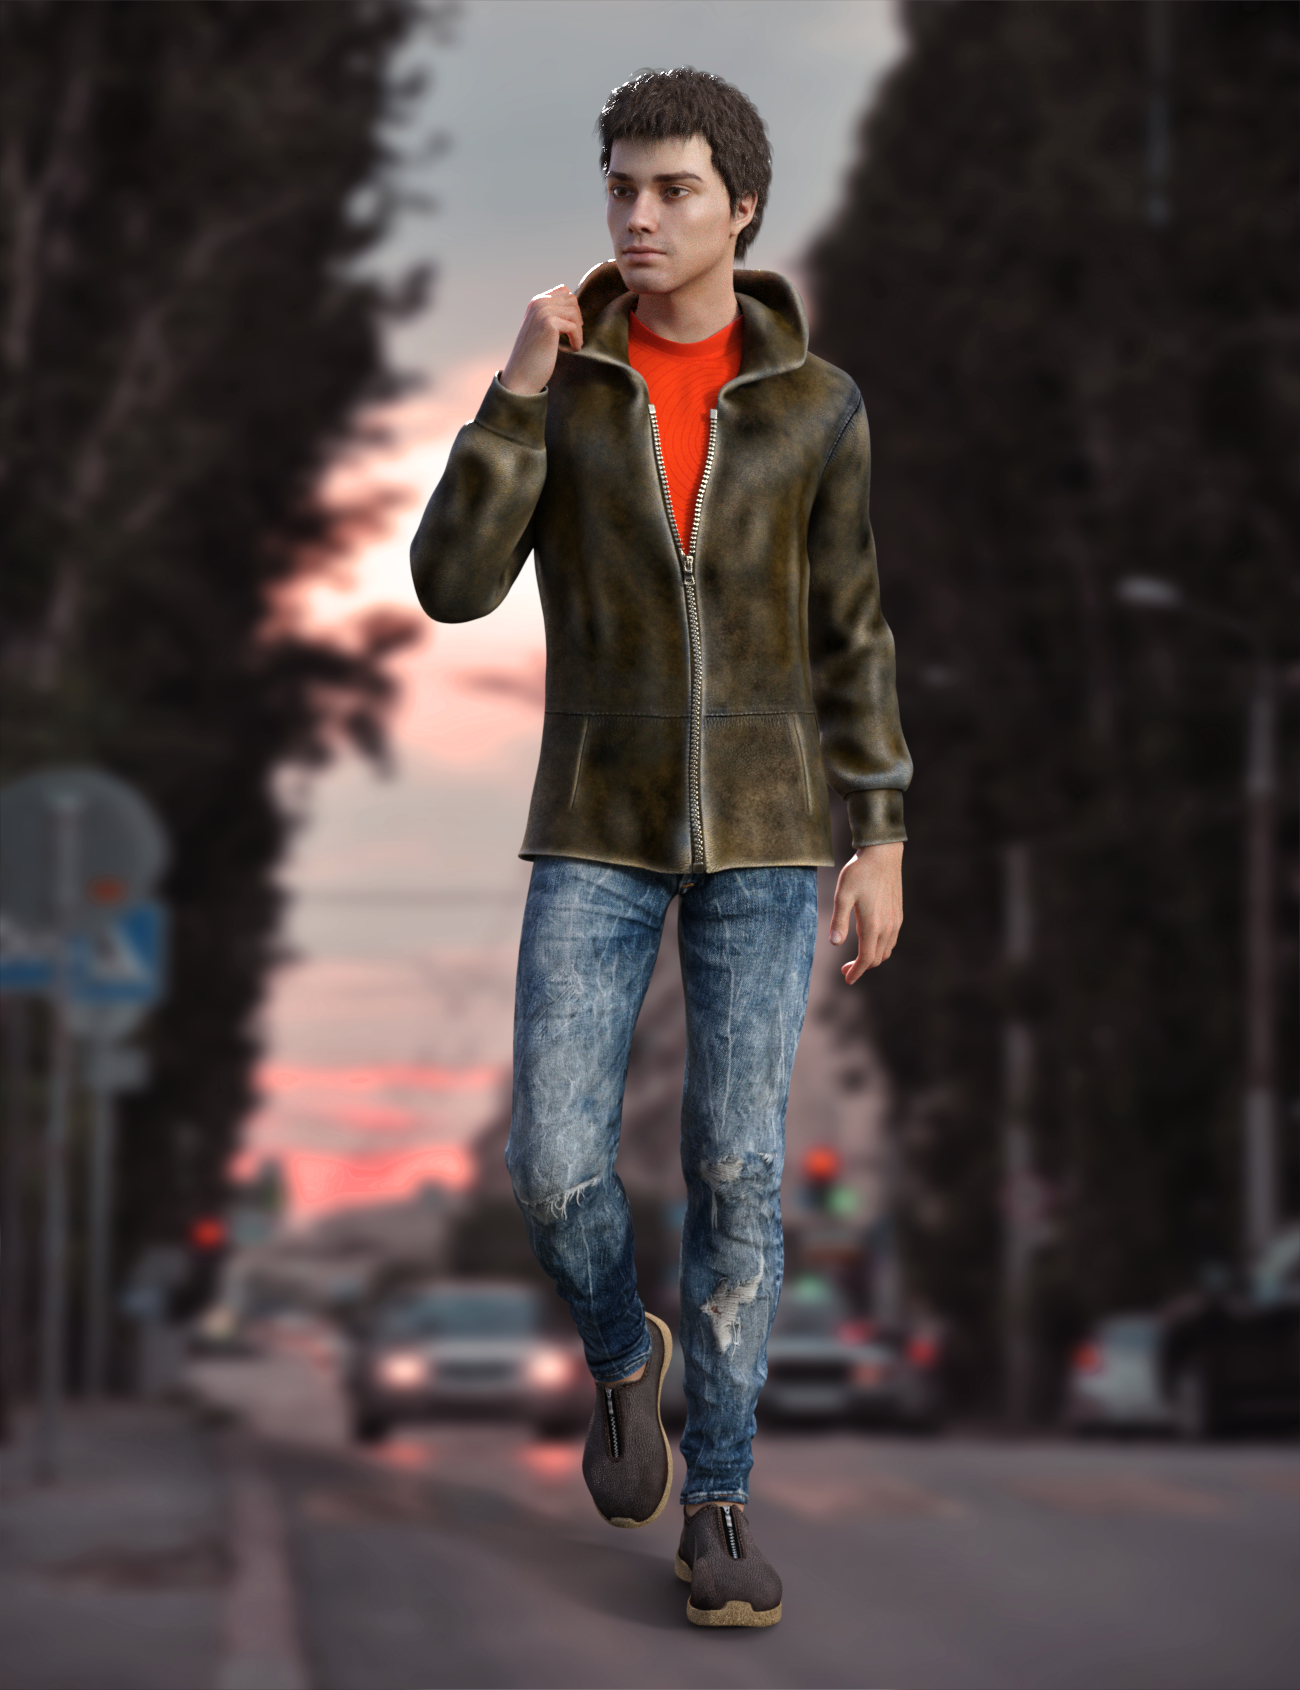 Vlad Outfit for Vlad Original Figure and for Genesis 8 Male(s) by: Vyusur, 3D Models by Daz 3D